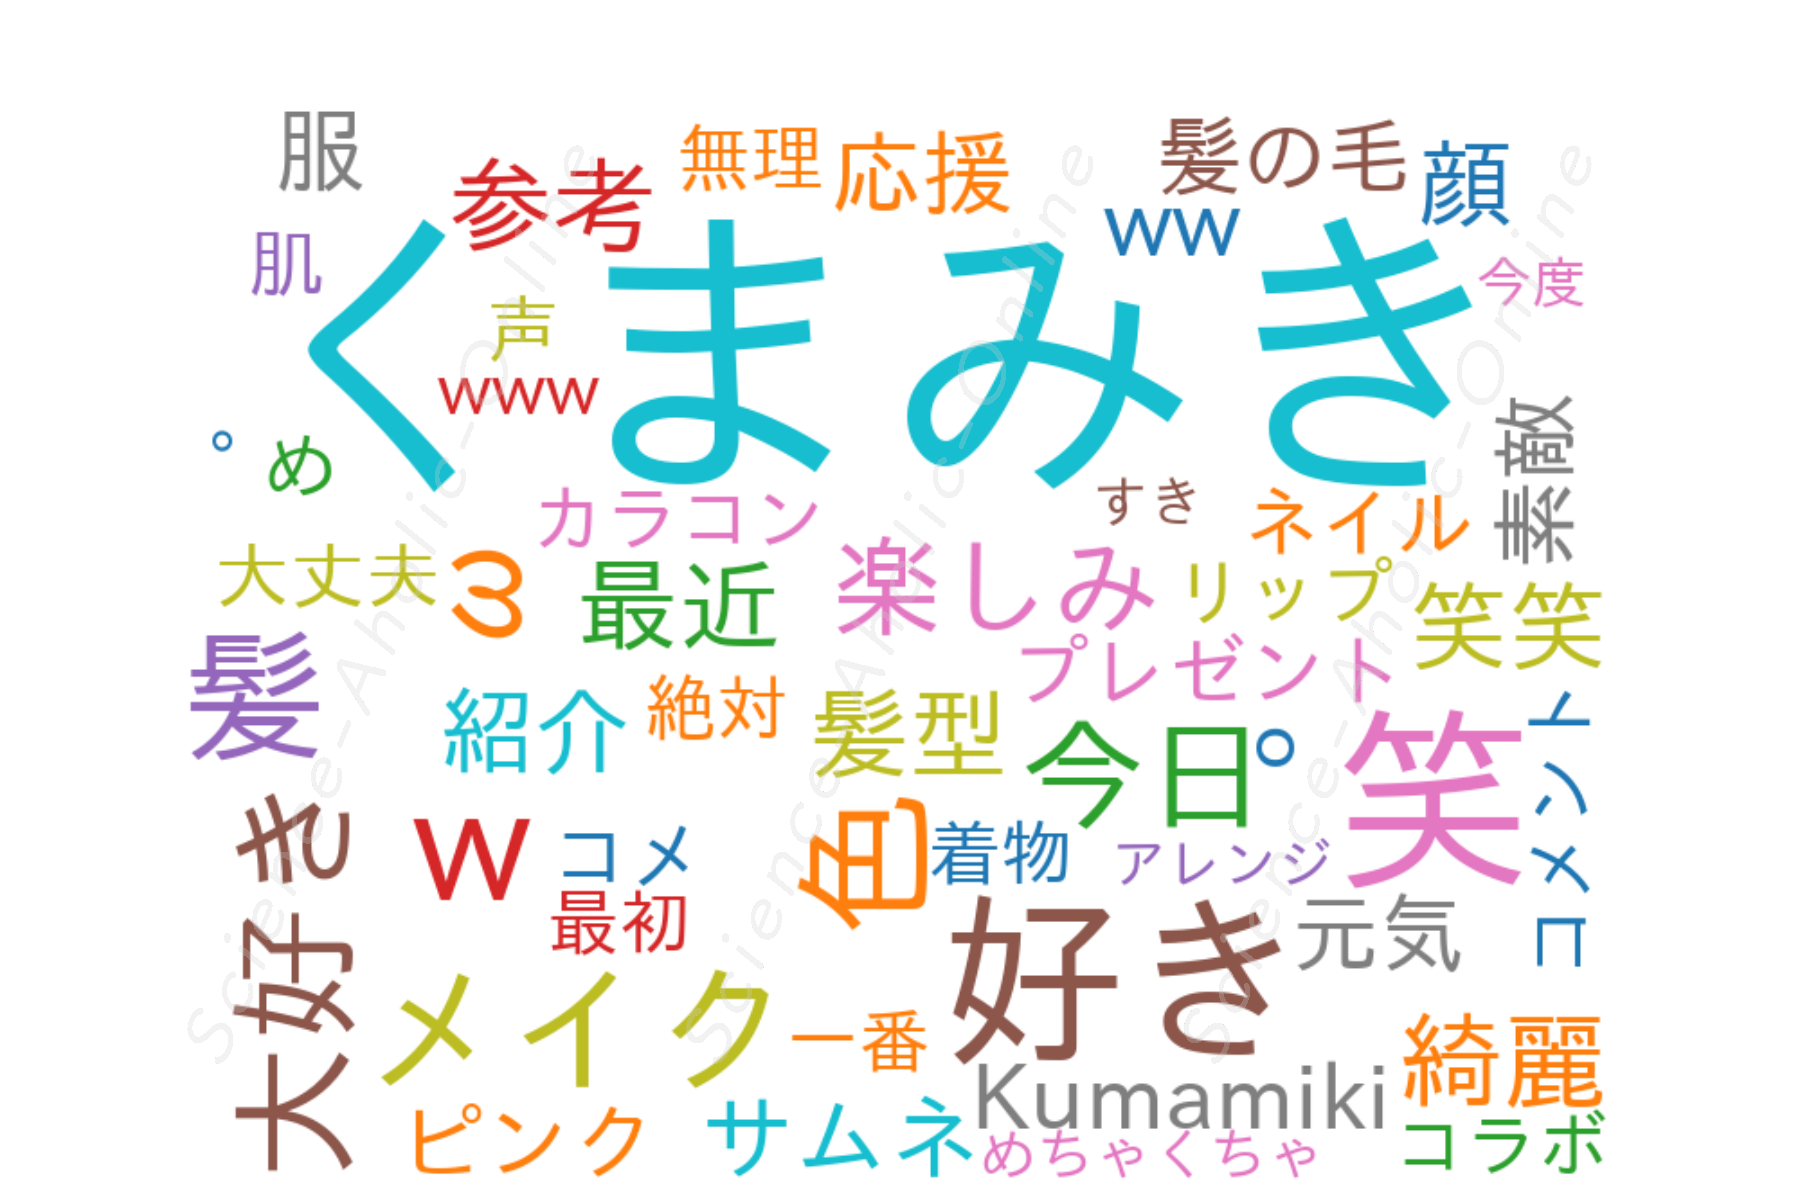 https://science-aholic-online.com/wp-content/uploads/2020/08/wordcloud_くまみきKumamiki.png